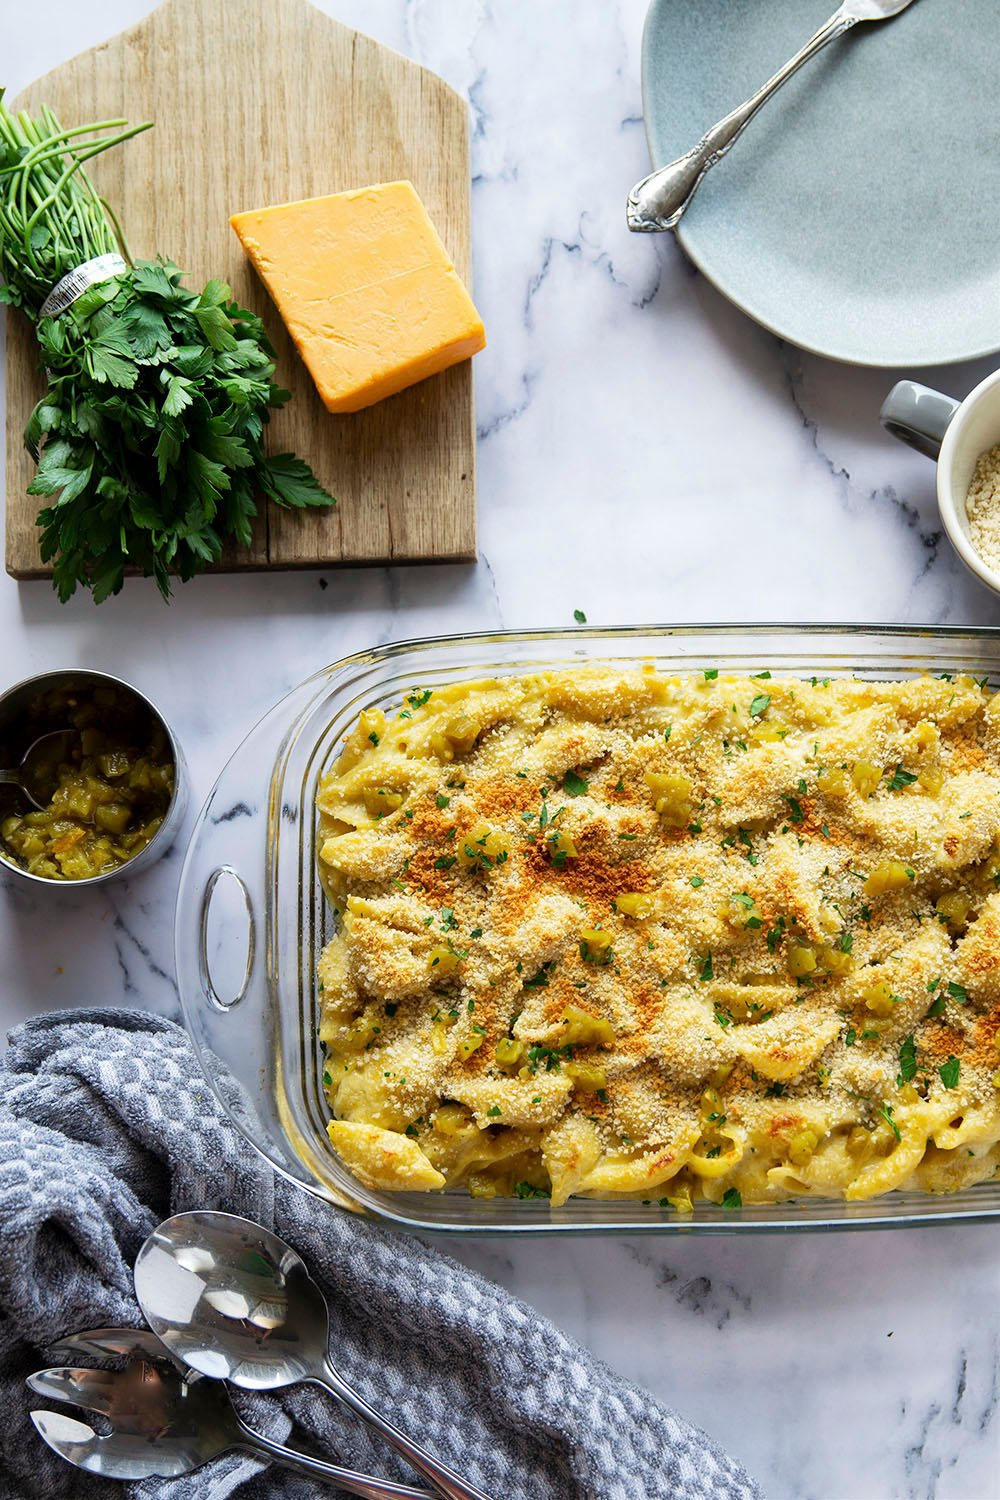 Smoked cheddar and spicy green chiles take this gooey green chile macaroni and cheese to the next level!